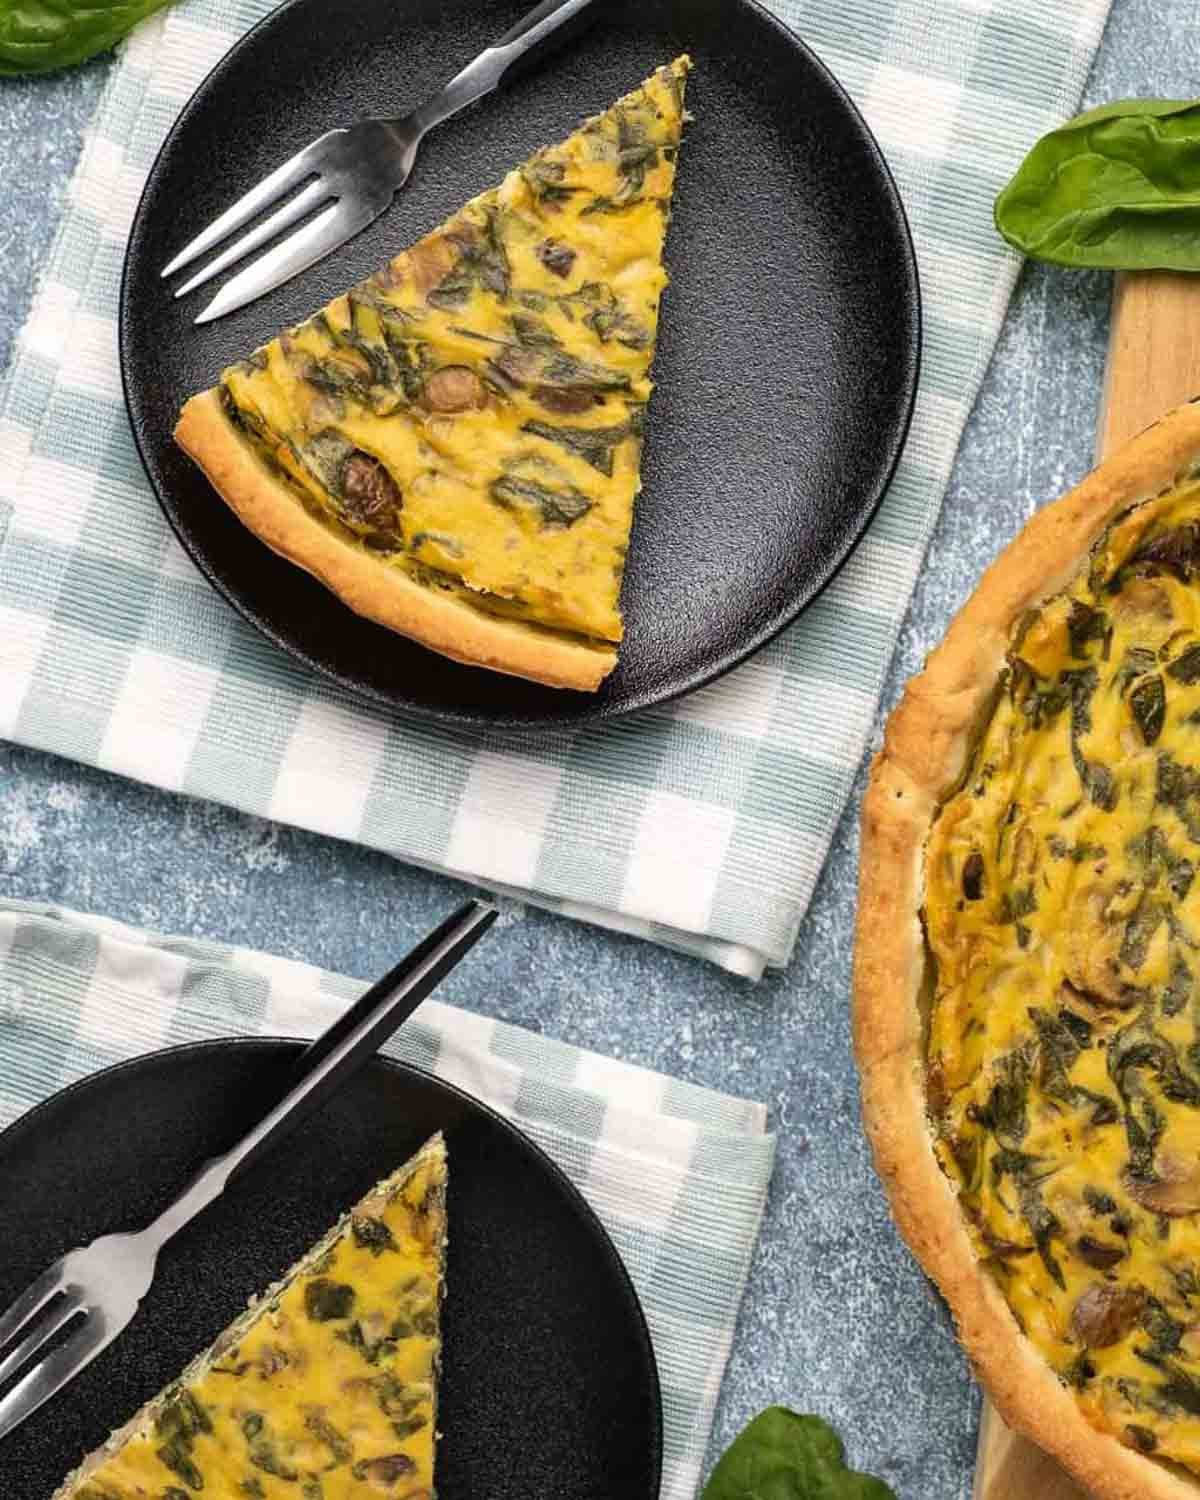 Slices of quiche served on 2 plate with forks.